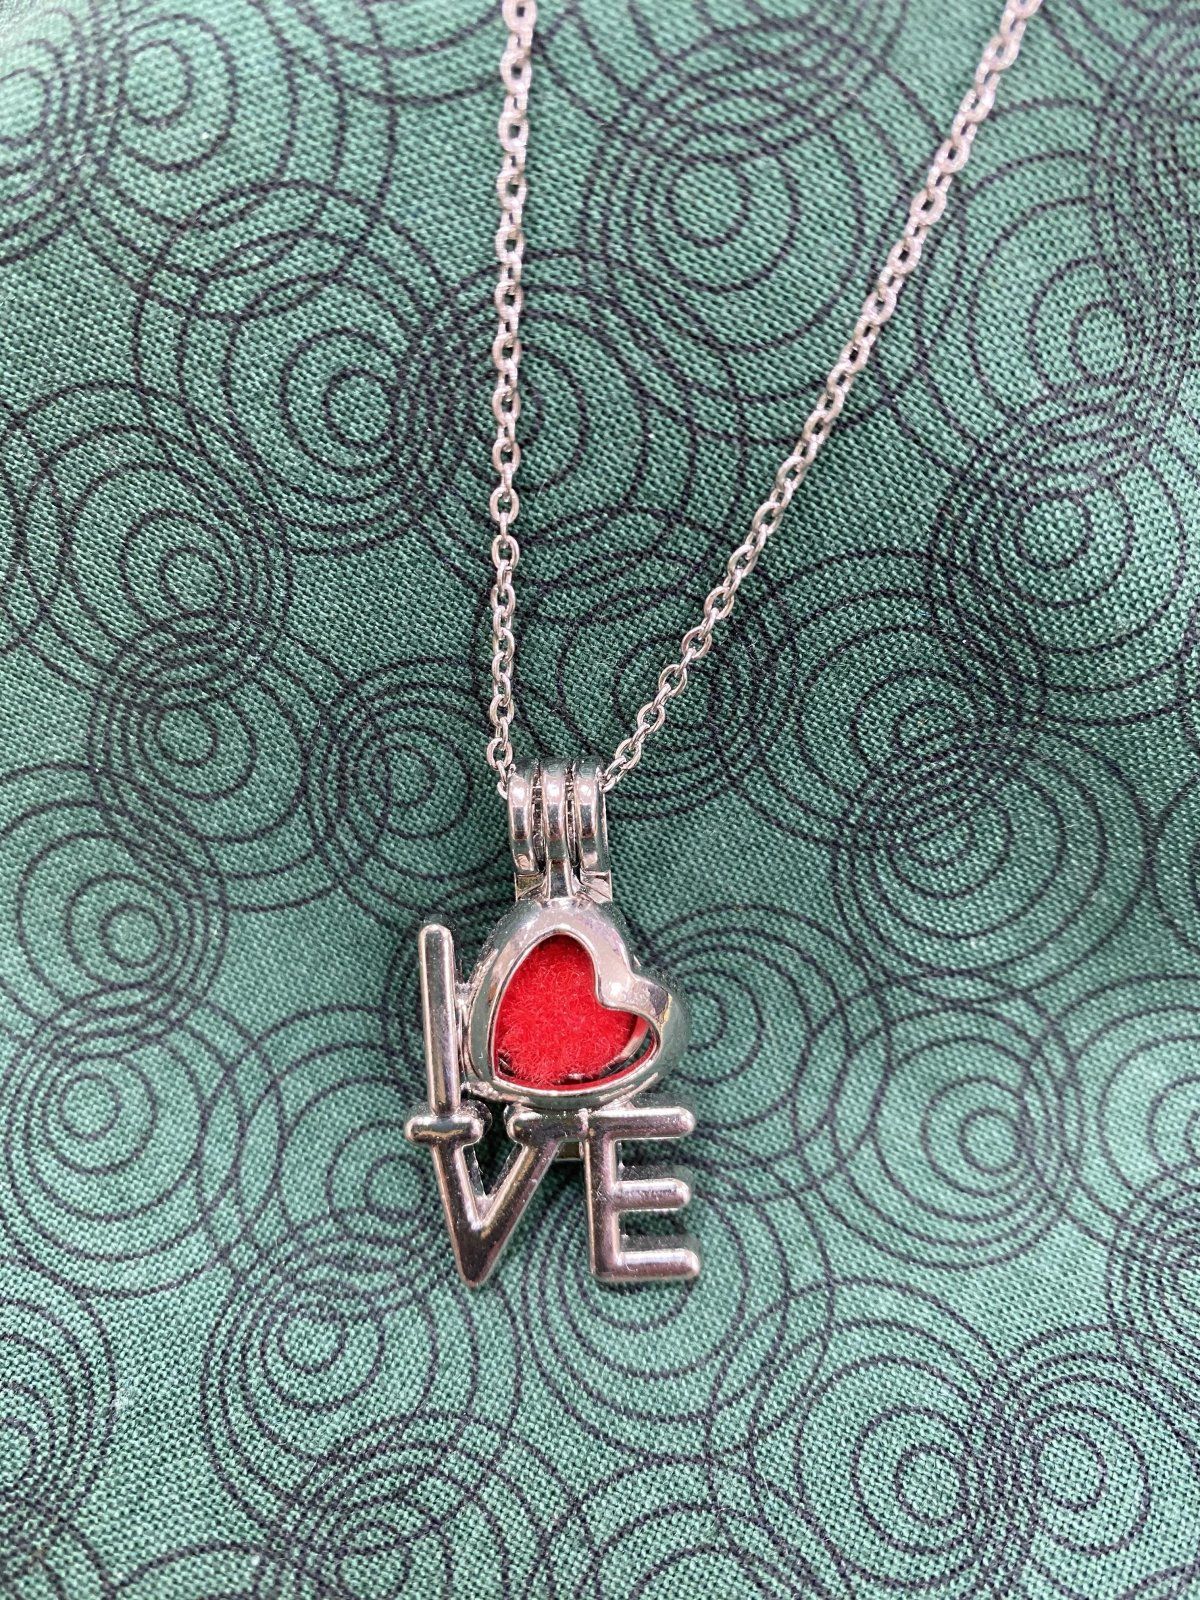 Love Essential Oil Necklace